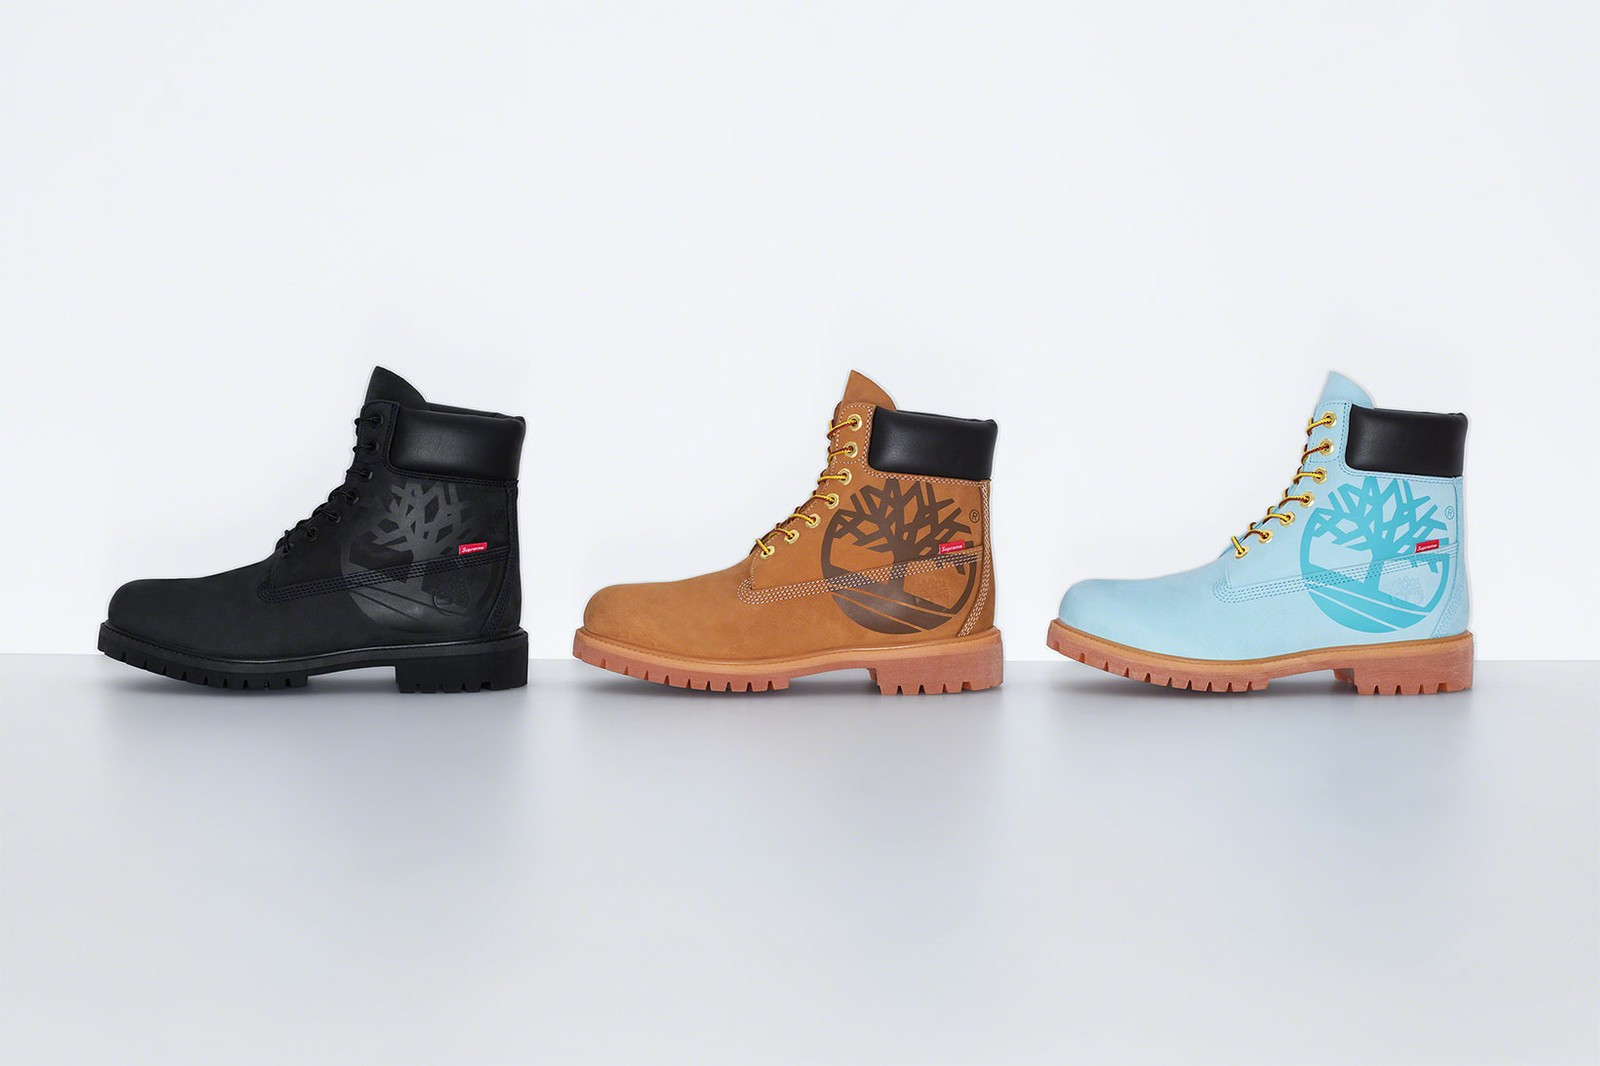 timberland supreme 6 inch boots waterproof collaboration tan brown blue black release